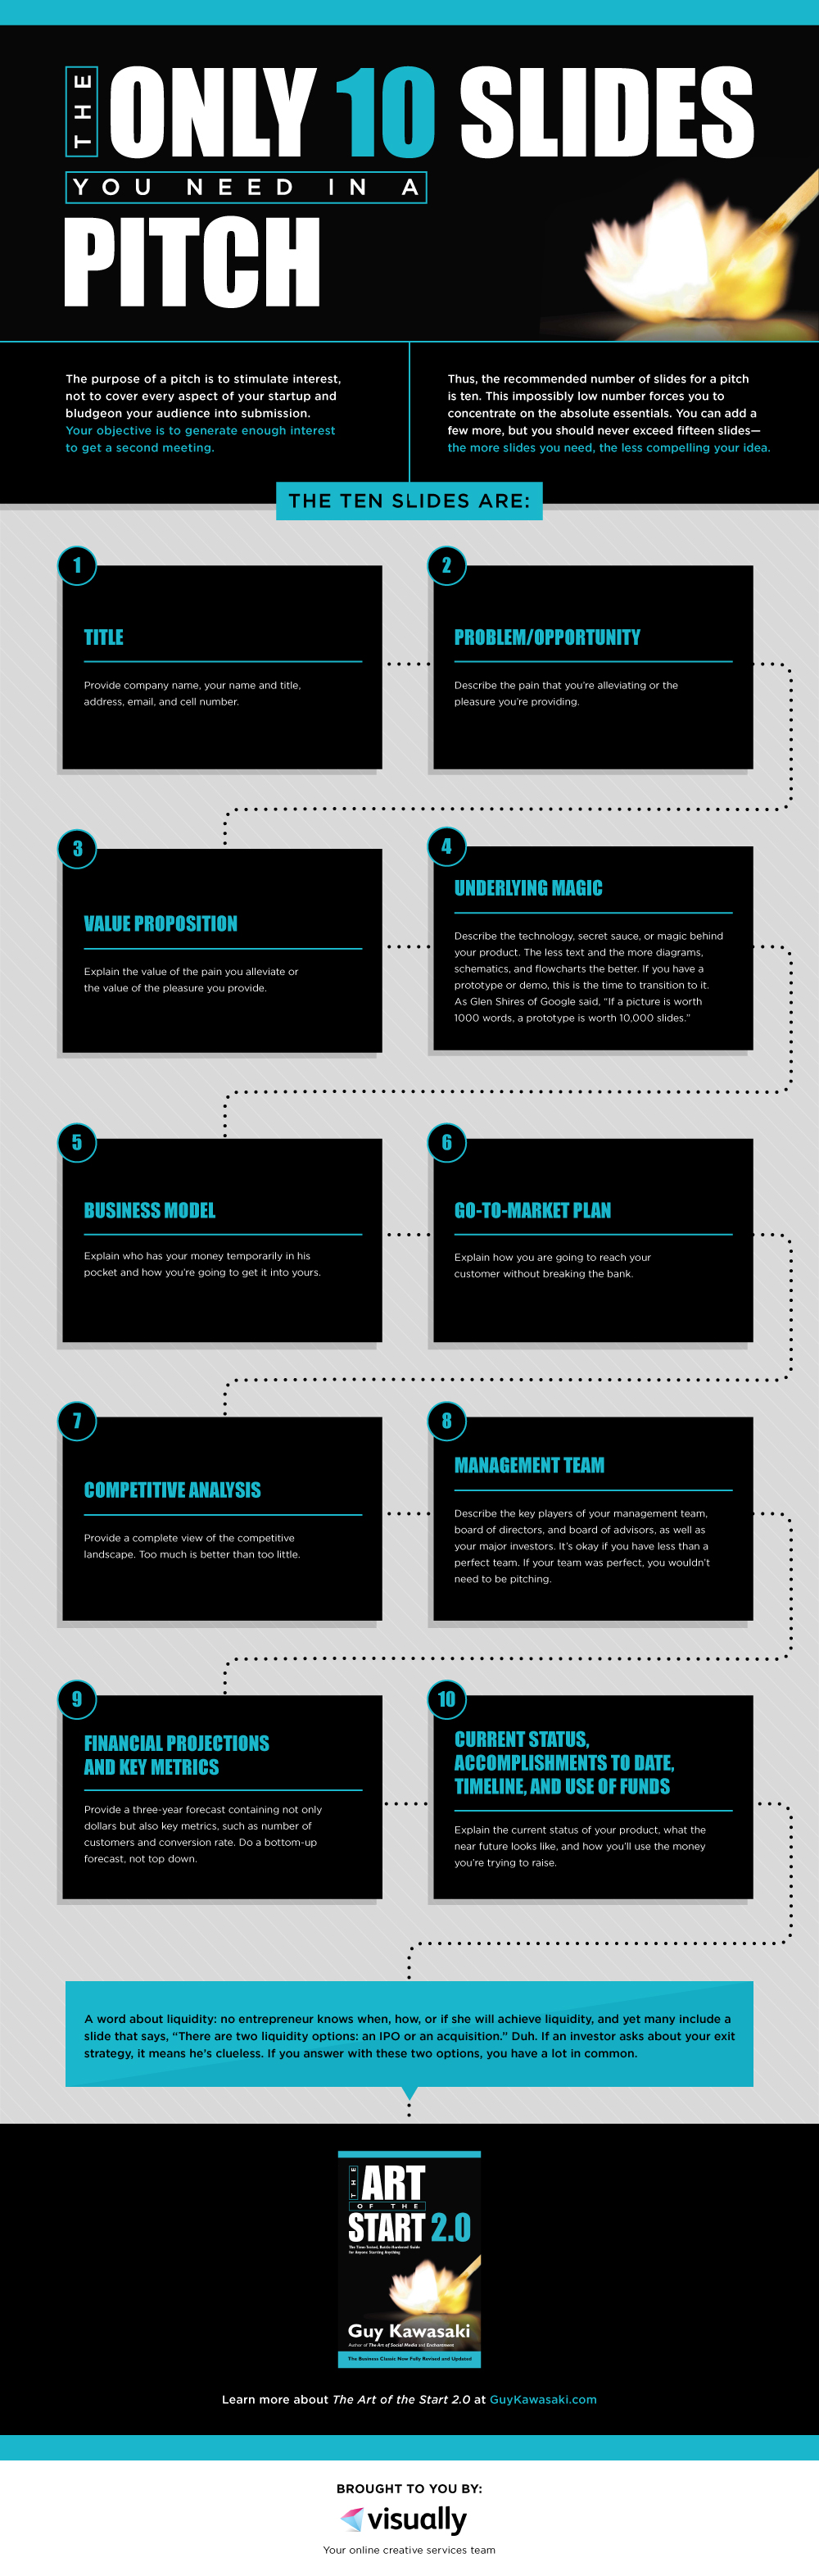 The Only 10 Slides You Need in Your Pitch